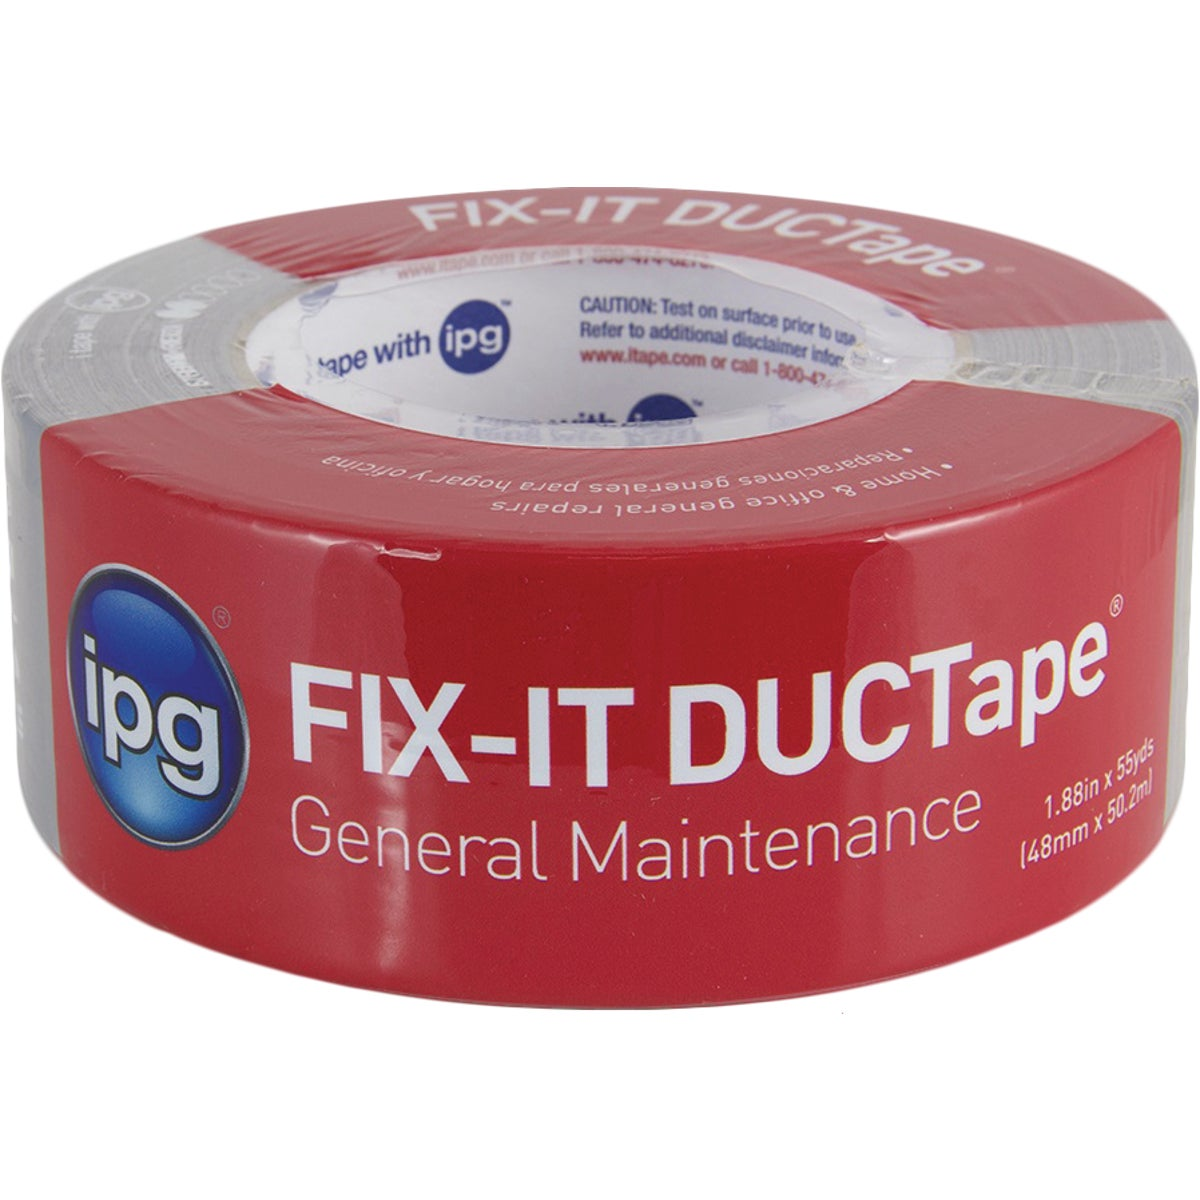 1.87X55YD SLVR DUCT TAPE - 6900 by Intertape Polymer